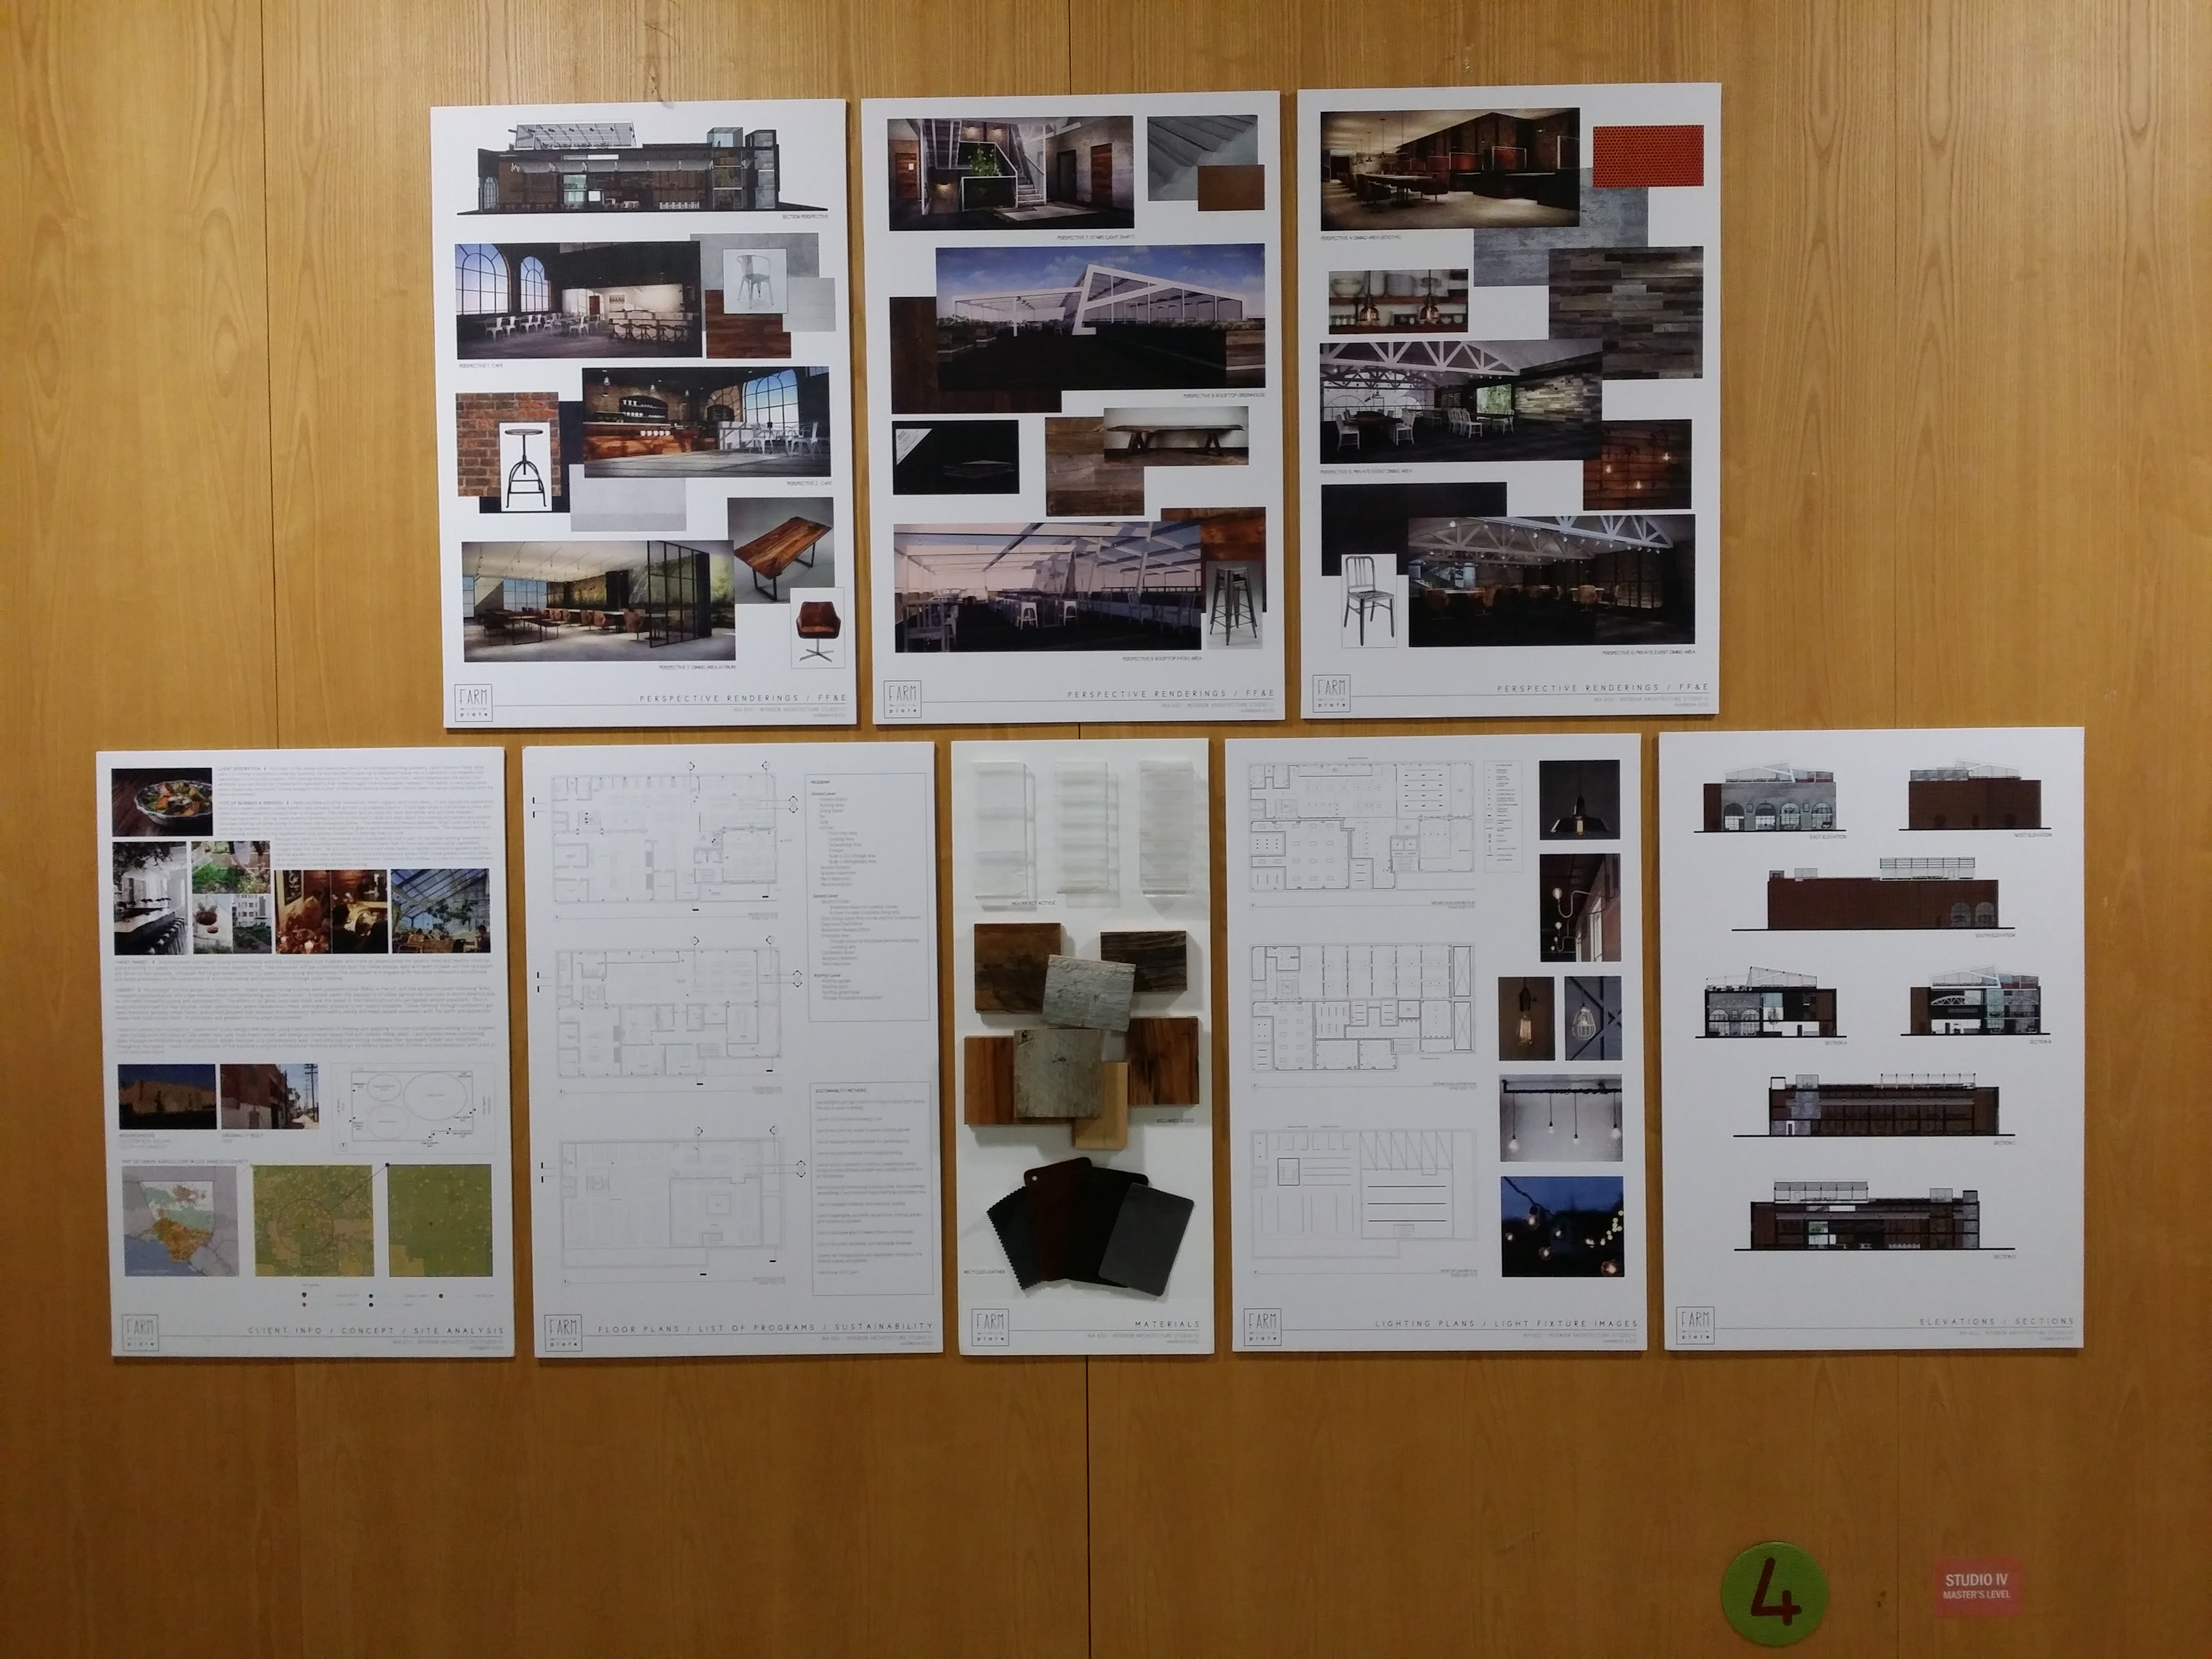 CIDA Accreditation Review Student Projects On Display at 1010